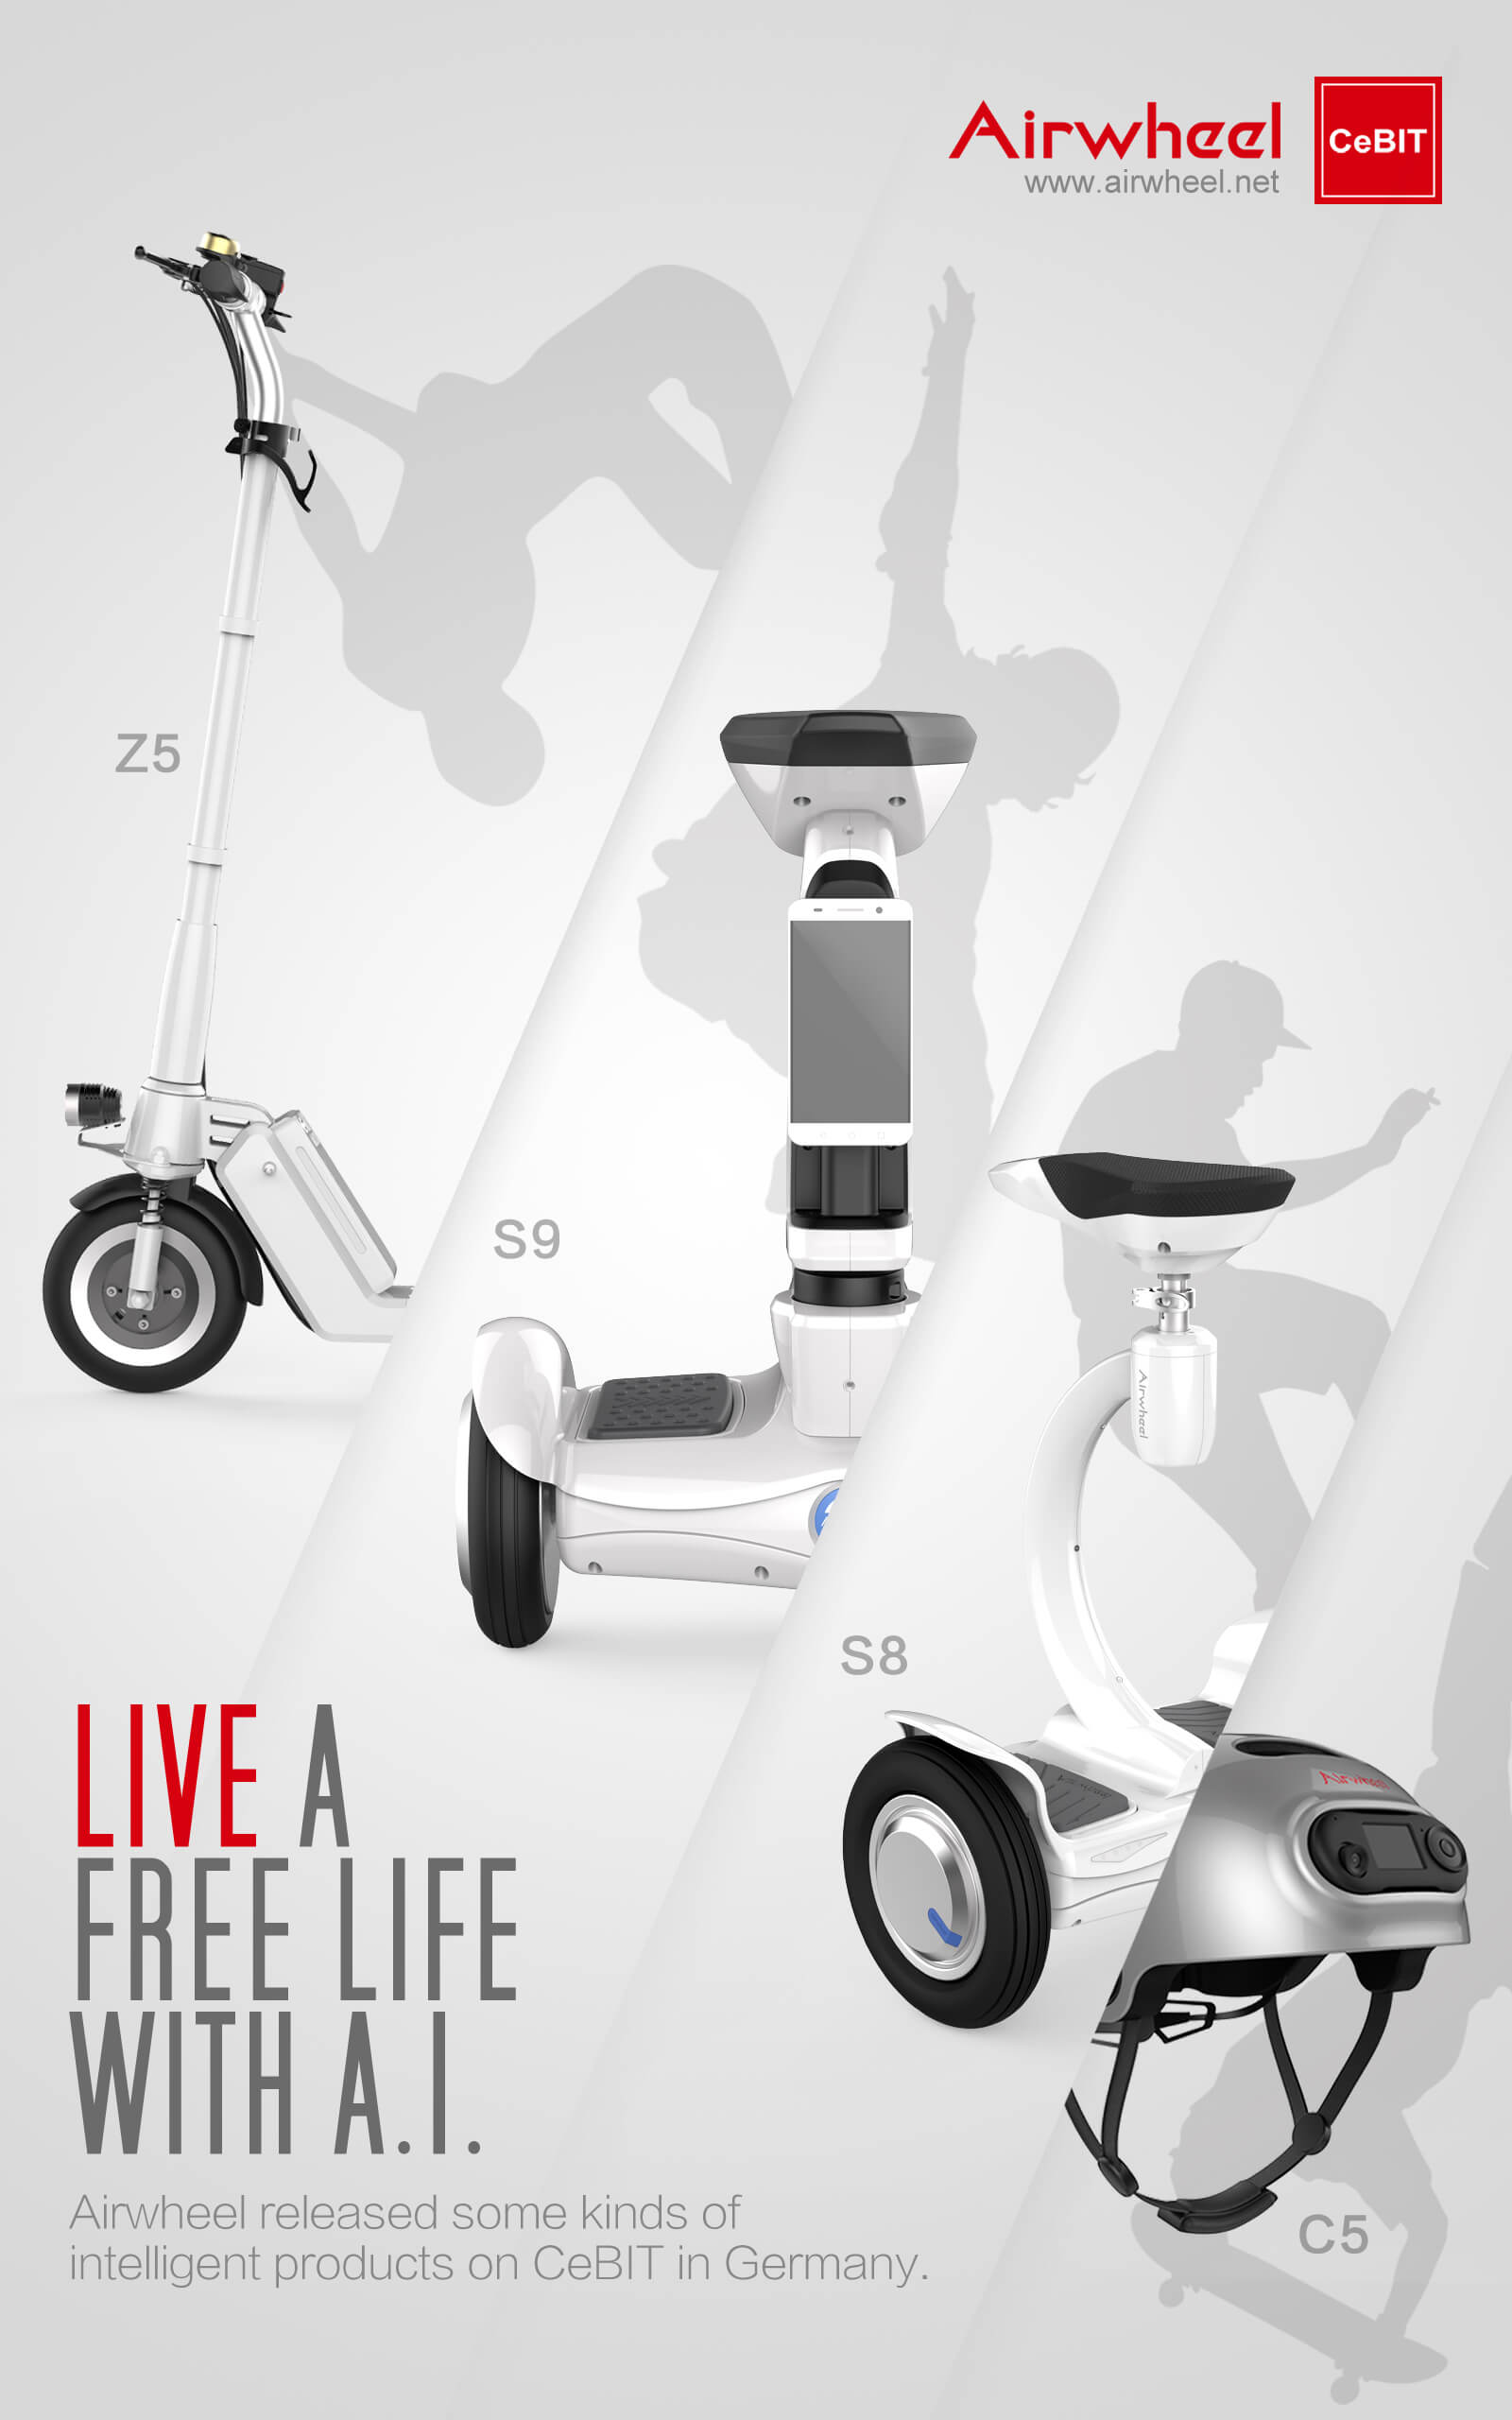 Airwheel S9, which is an artificial intelligence robot